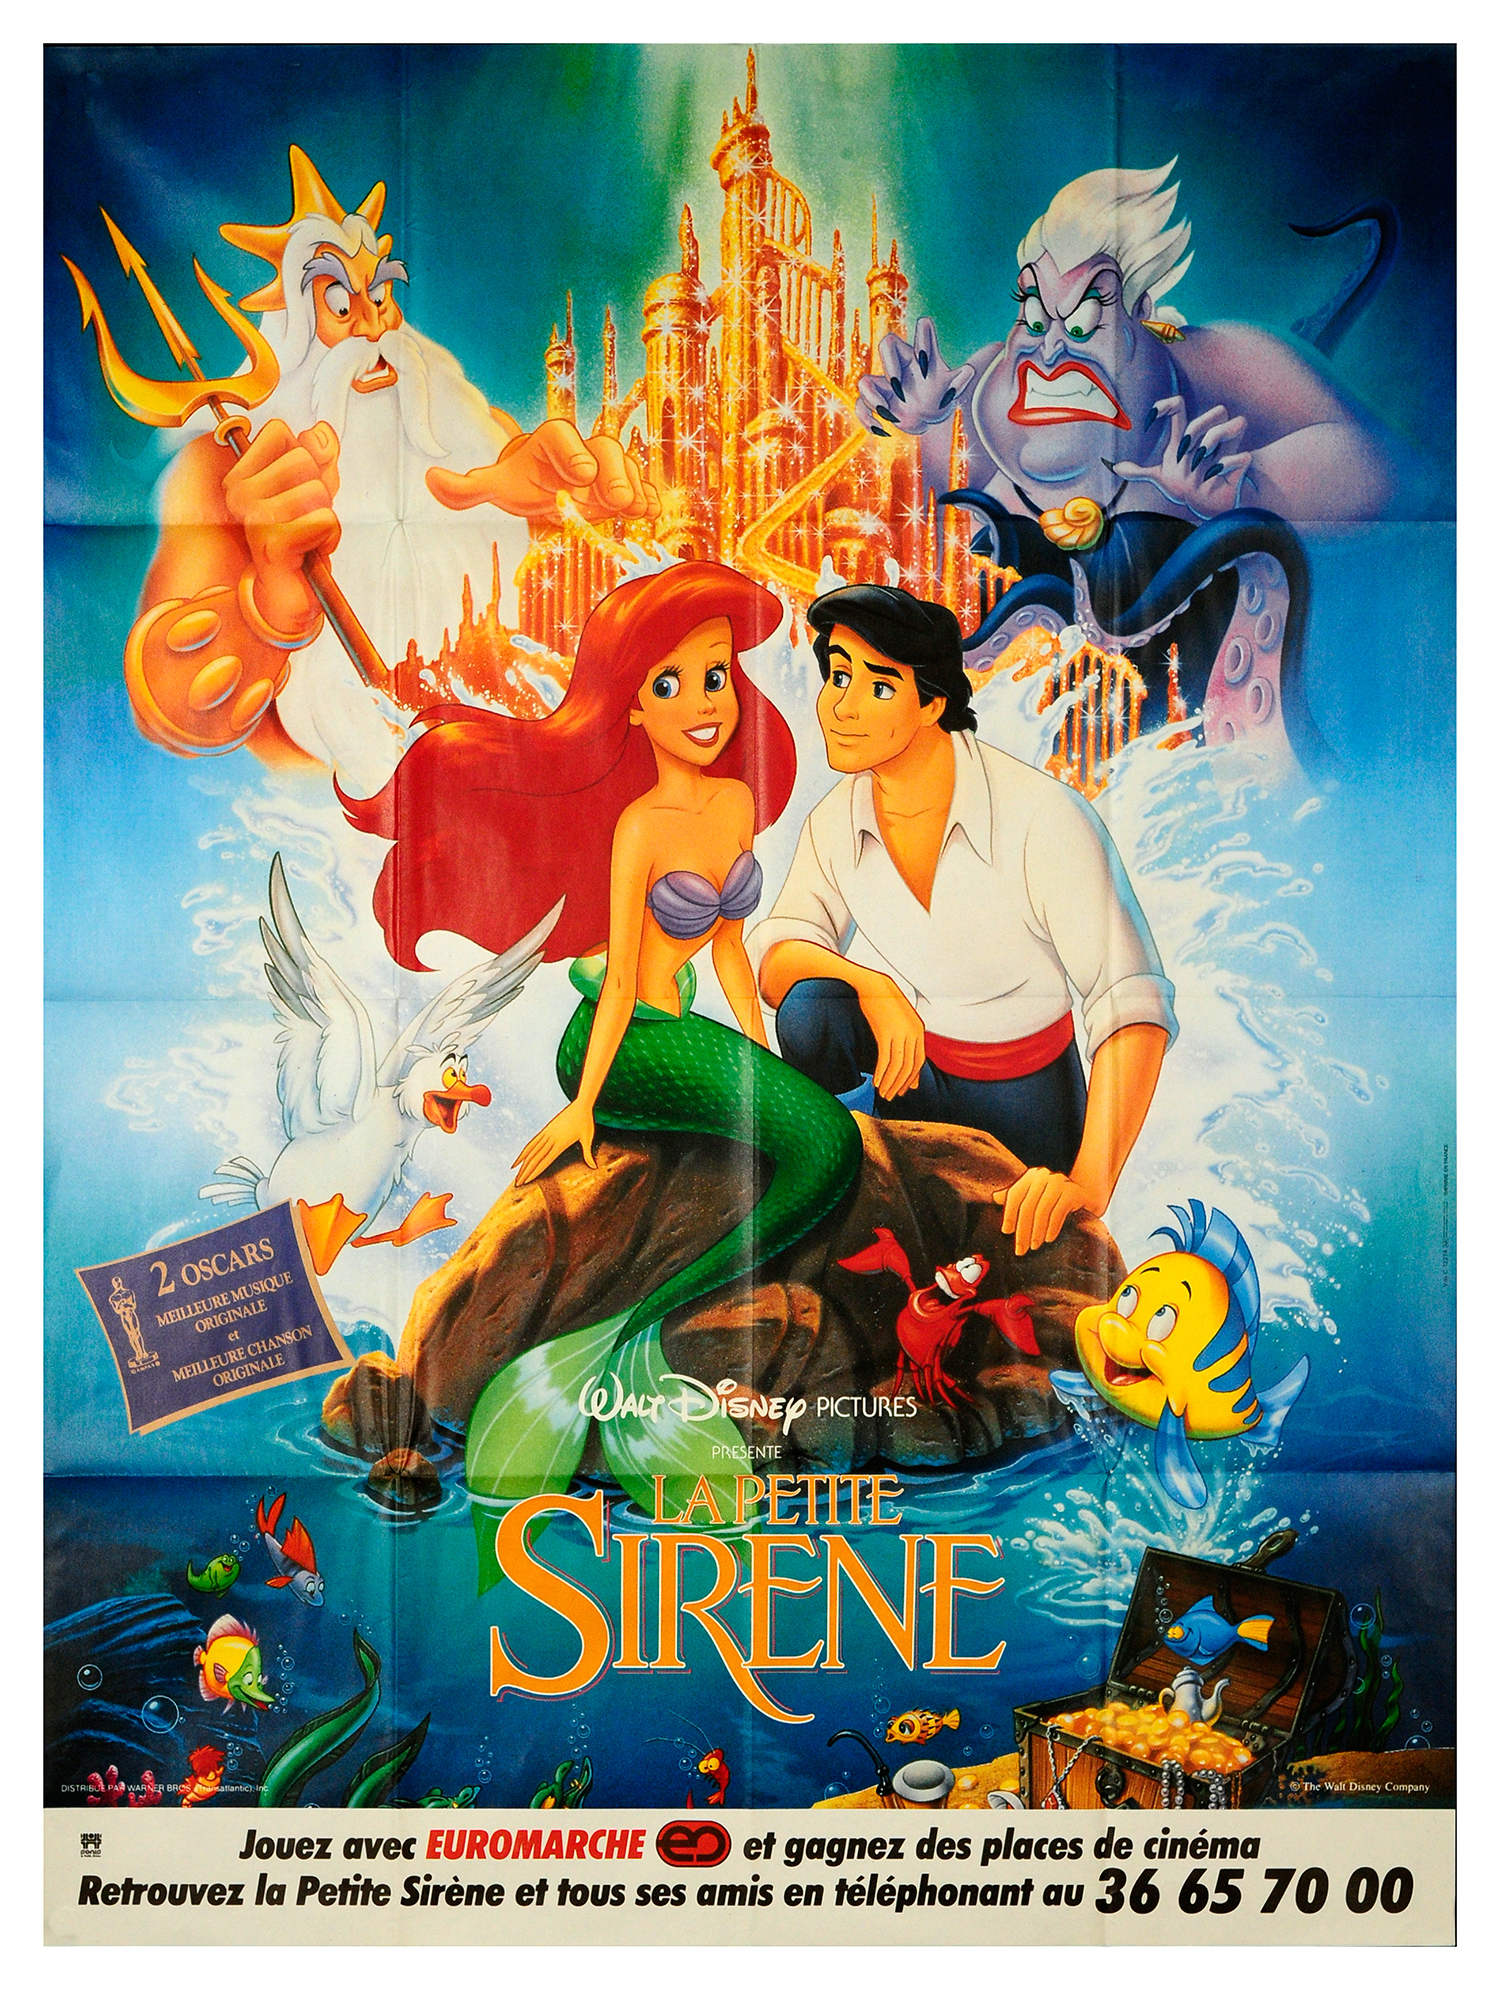 The little mermaid original movie poster